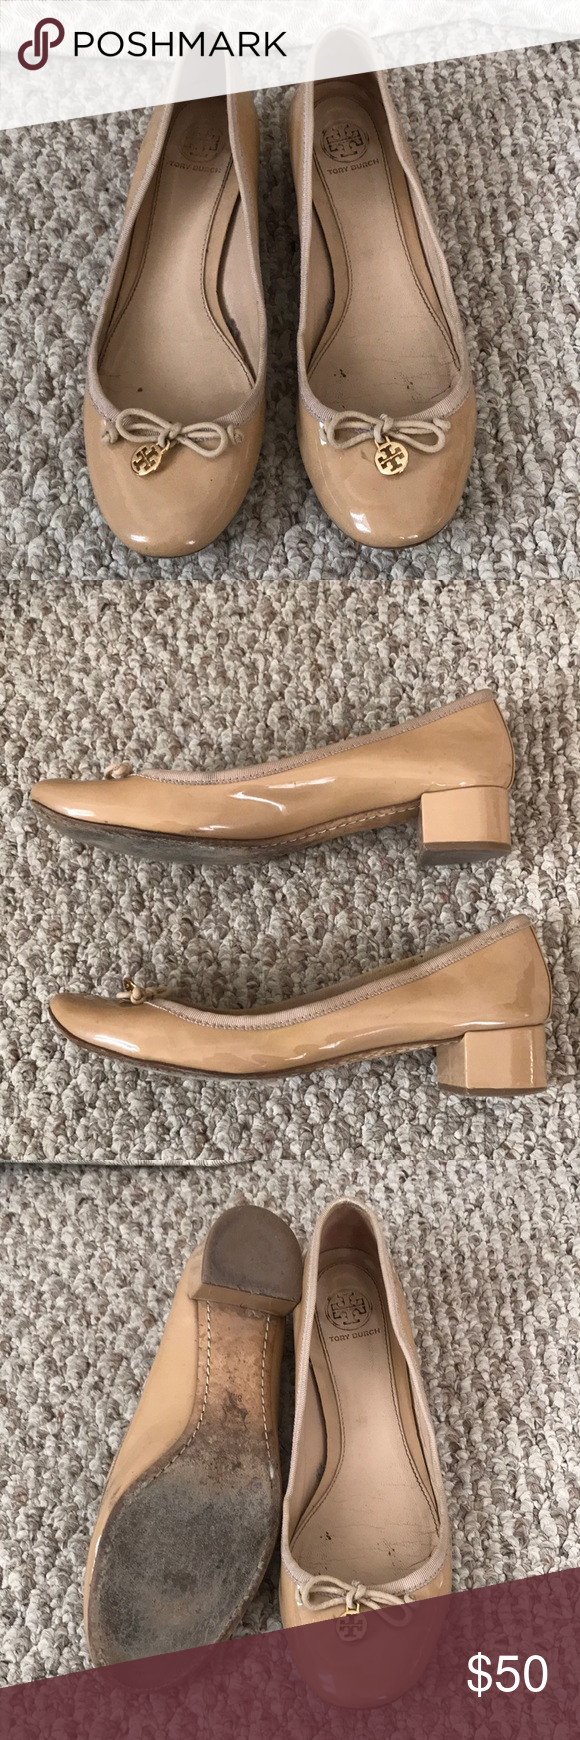 3c3af57af84ca Tory Burch Chelsea Patent Leather Low Heel Pumps Tory Burch Chelsea Low  Heel Pumps Nude Patent Leather Self-fabric bow and gold-tone logo dist at  toe Low ...